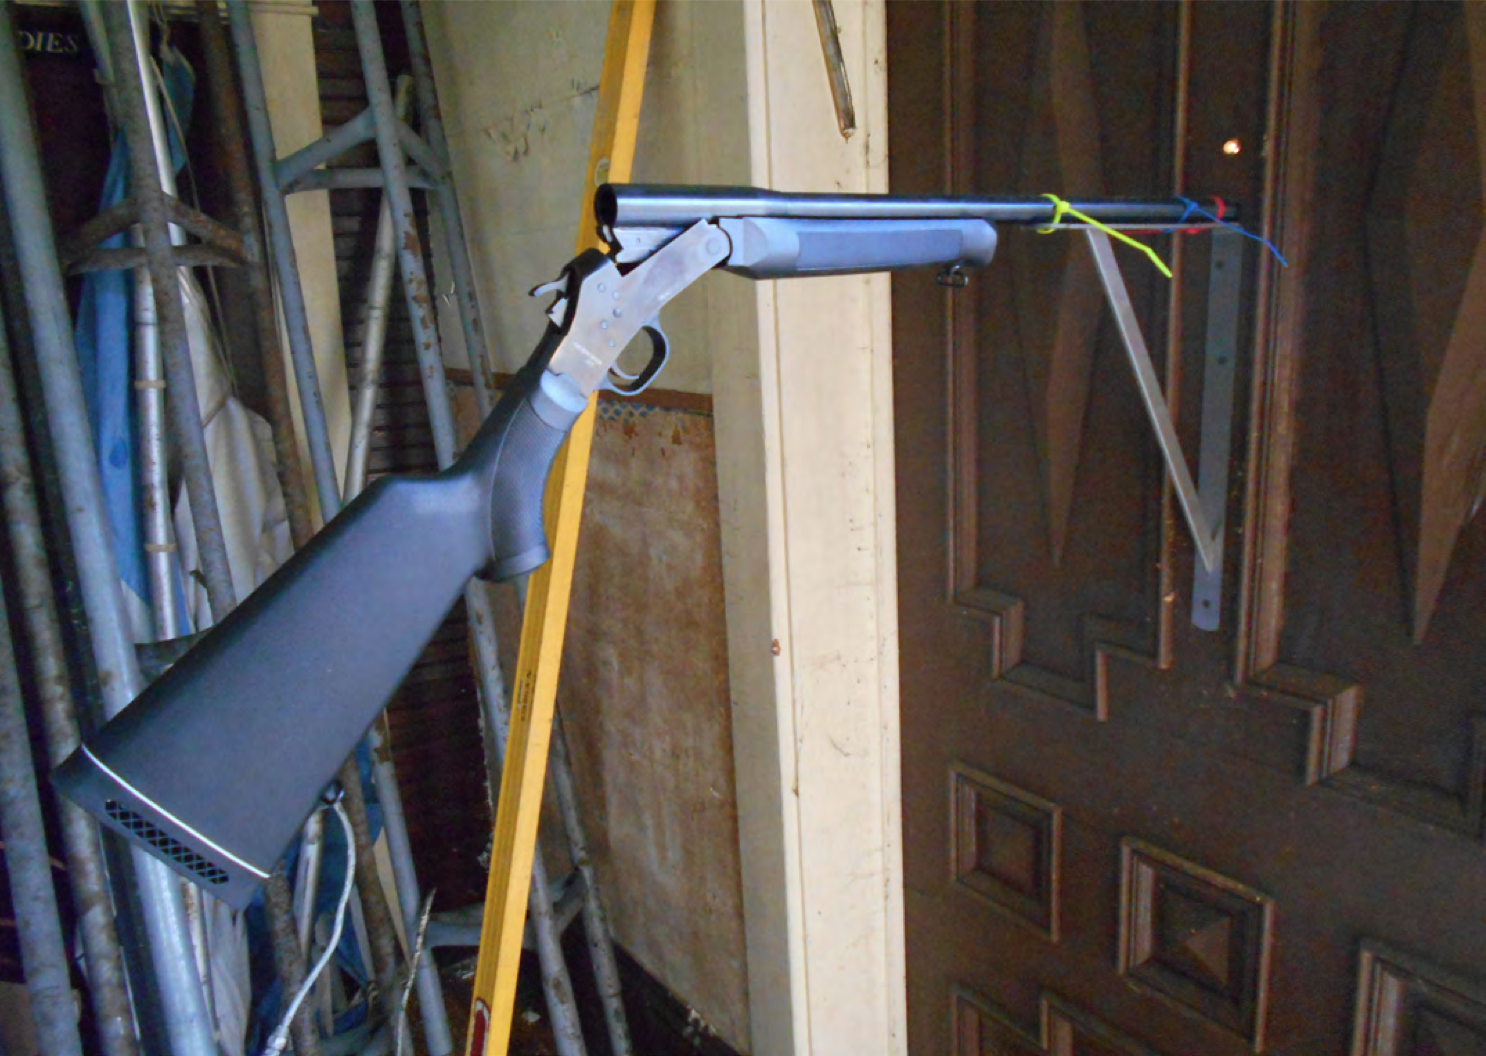 POINT BLANK, 2014. 12 gauge shotgun installed in shut door. Courtesy of the artist.